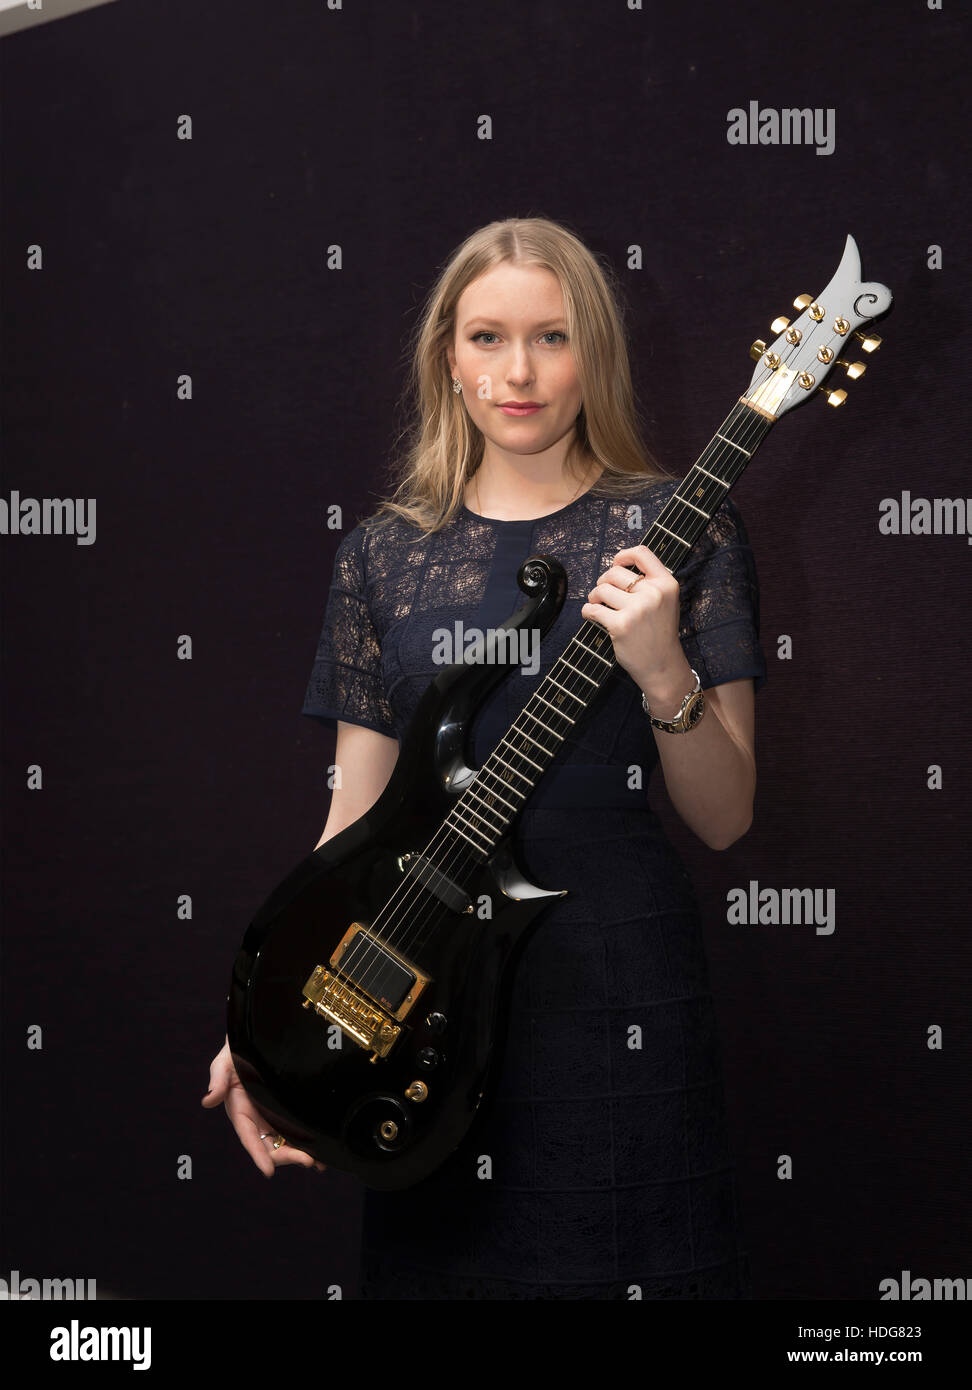 Knightsbridge, UK. 12th Dec, 2016. Cloud Guitar custom made for Prince on show at Bonhams ahead of the Entertainment - Stock Image